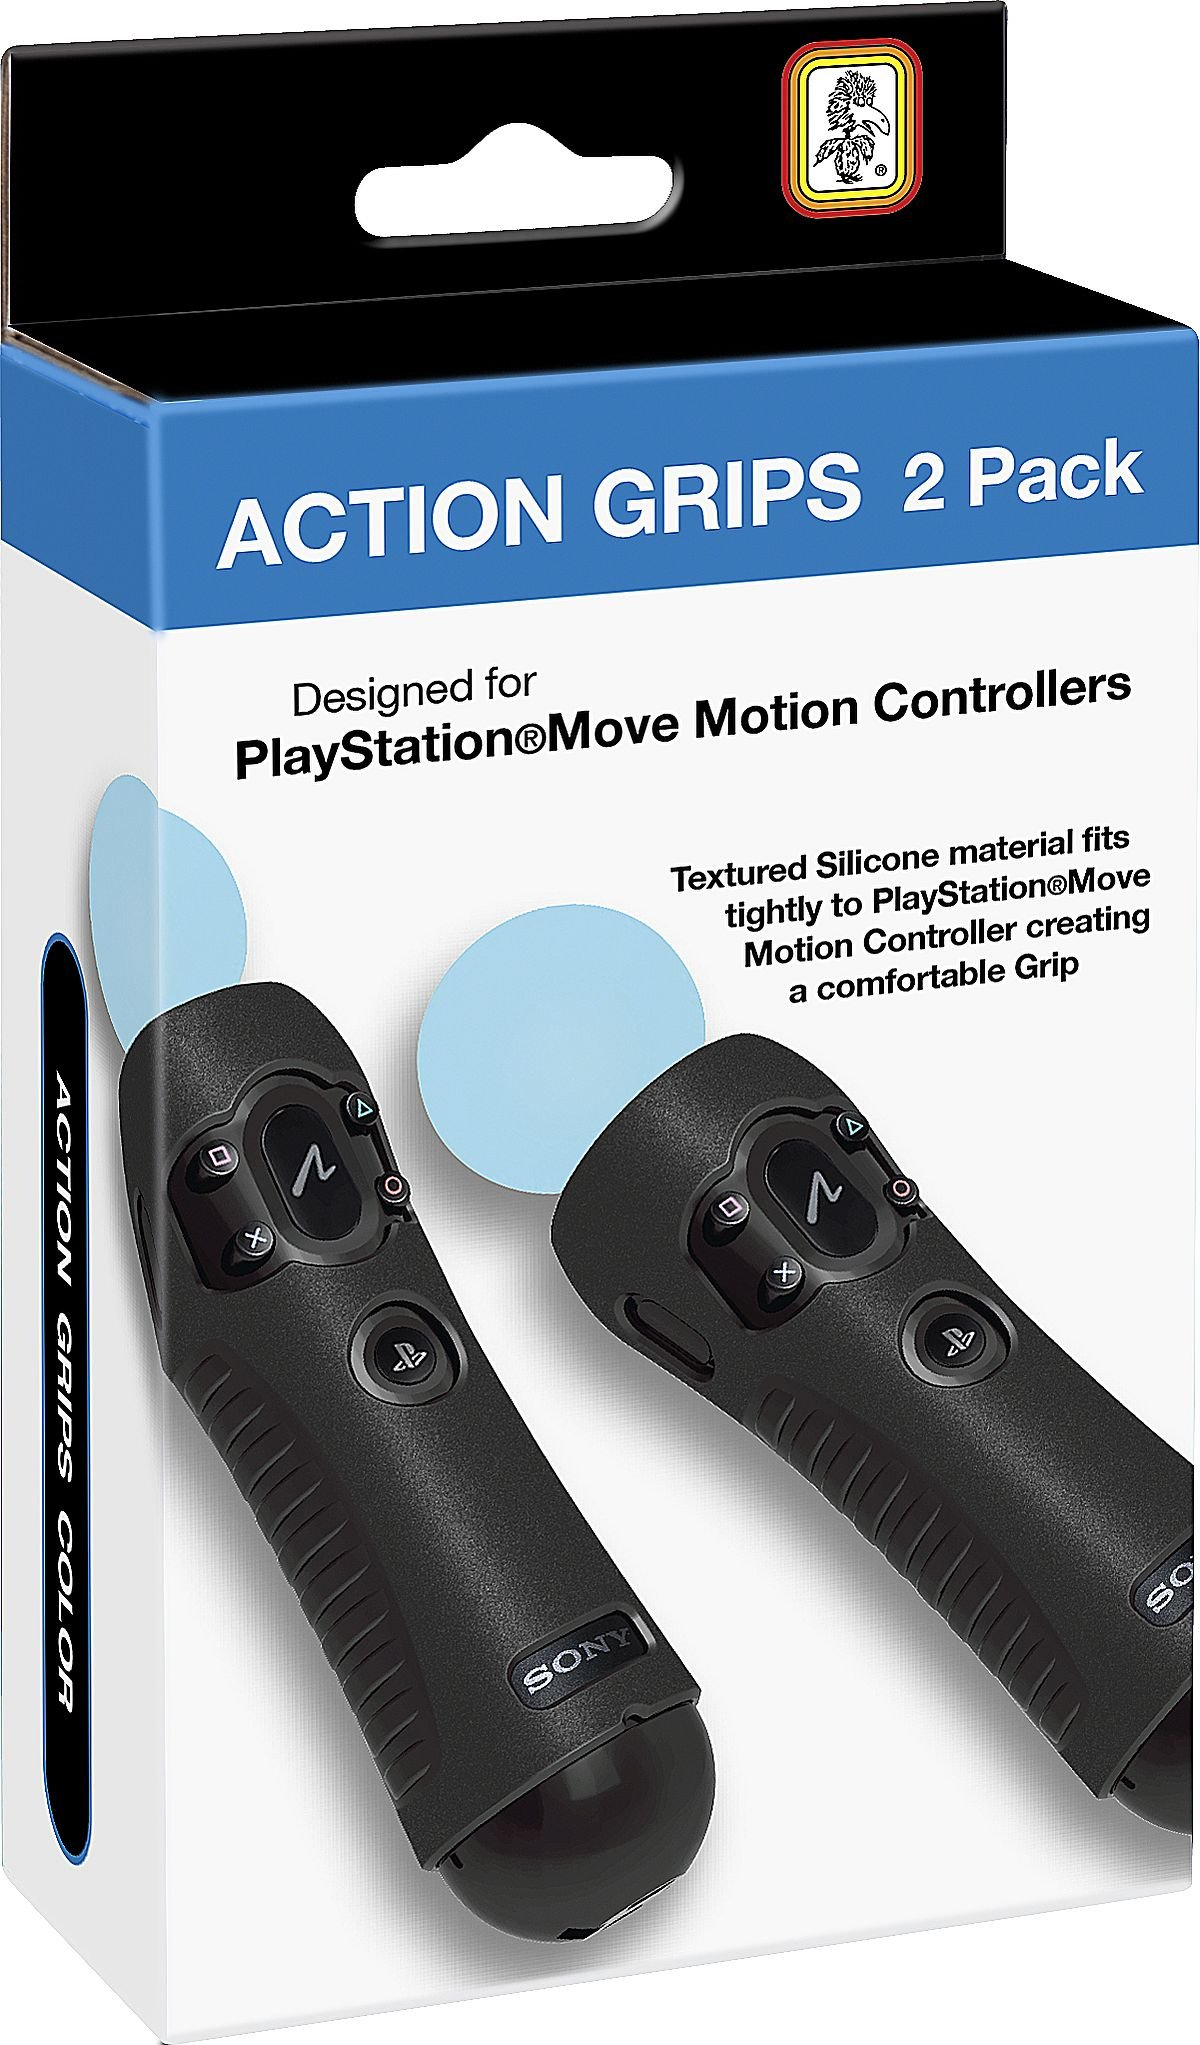 RDS Industries 2 Pack Action Grips for PlayStation Move Motion Controllers (B01LX4ZCJL) Amazon Price History, Amazon Price Tracker